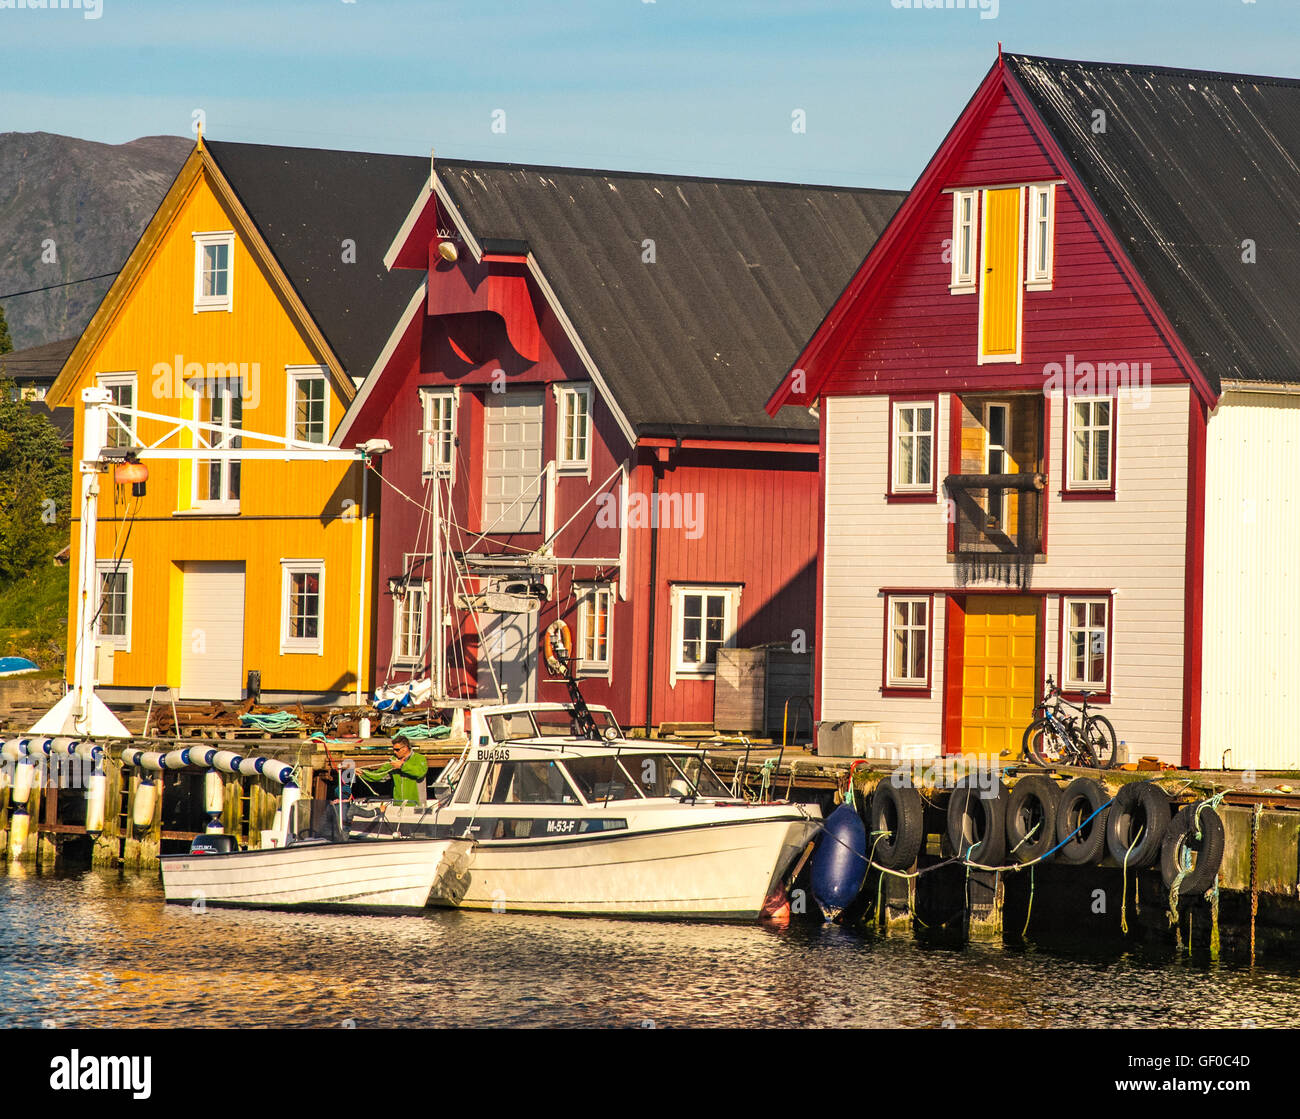 Colorful Fishing Boats in Bay, Bud More and Romsdal, West Coast, Norway, Scandanavia, European - Stock Image